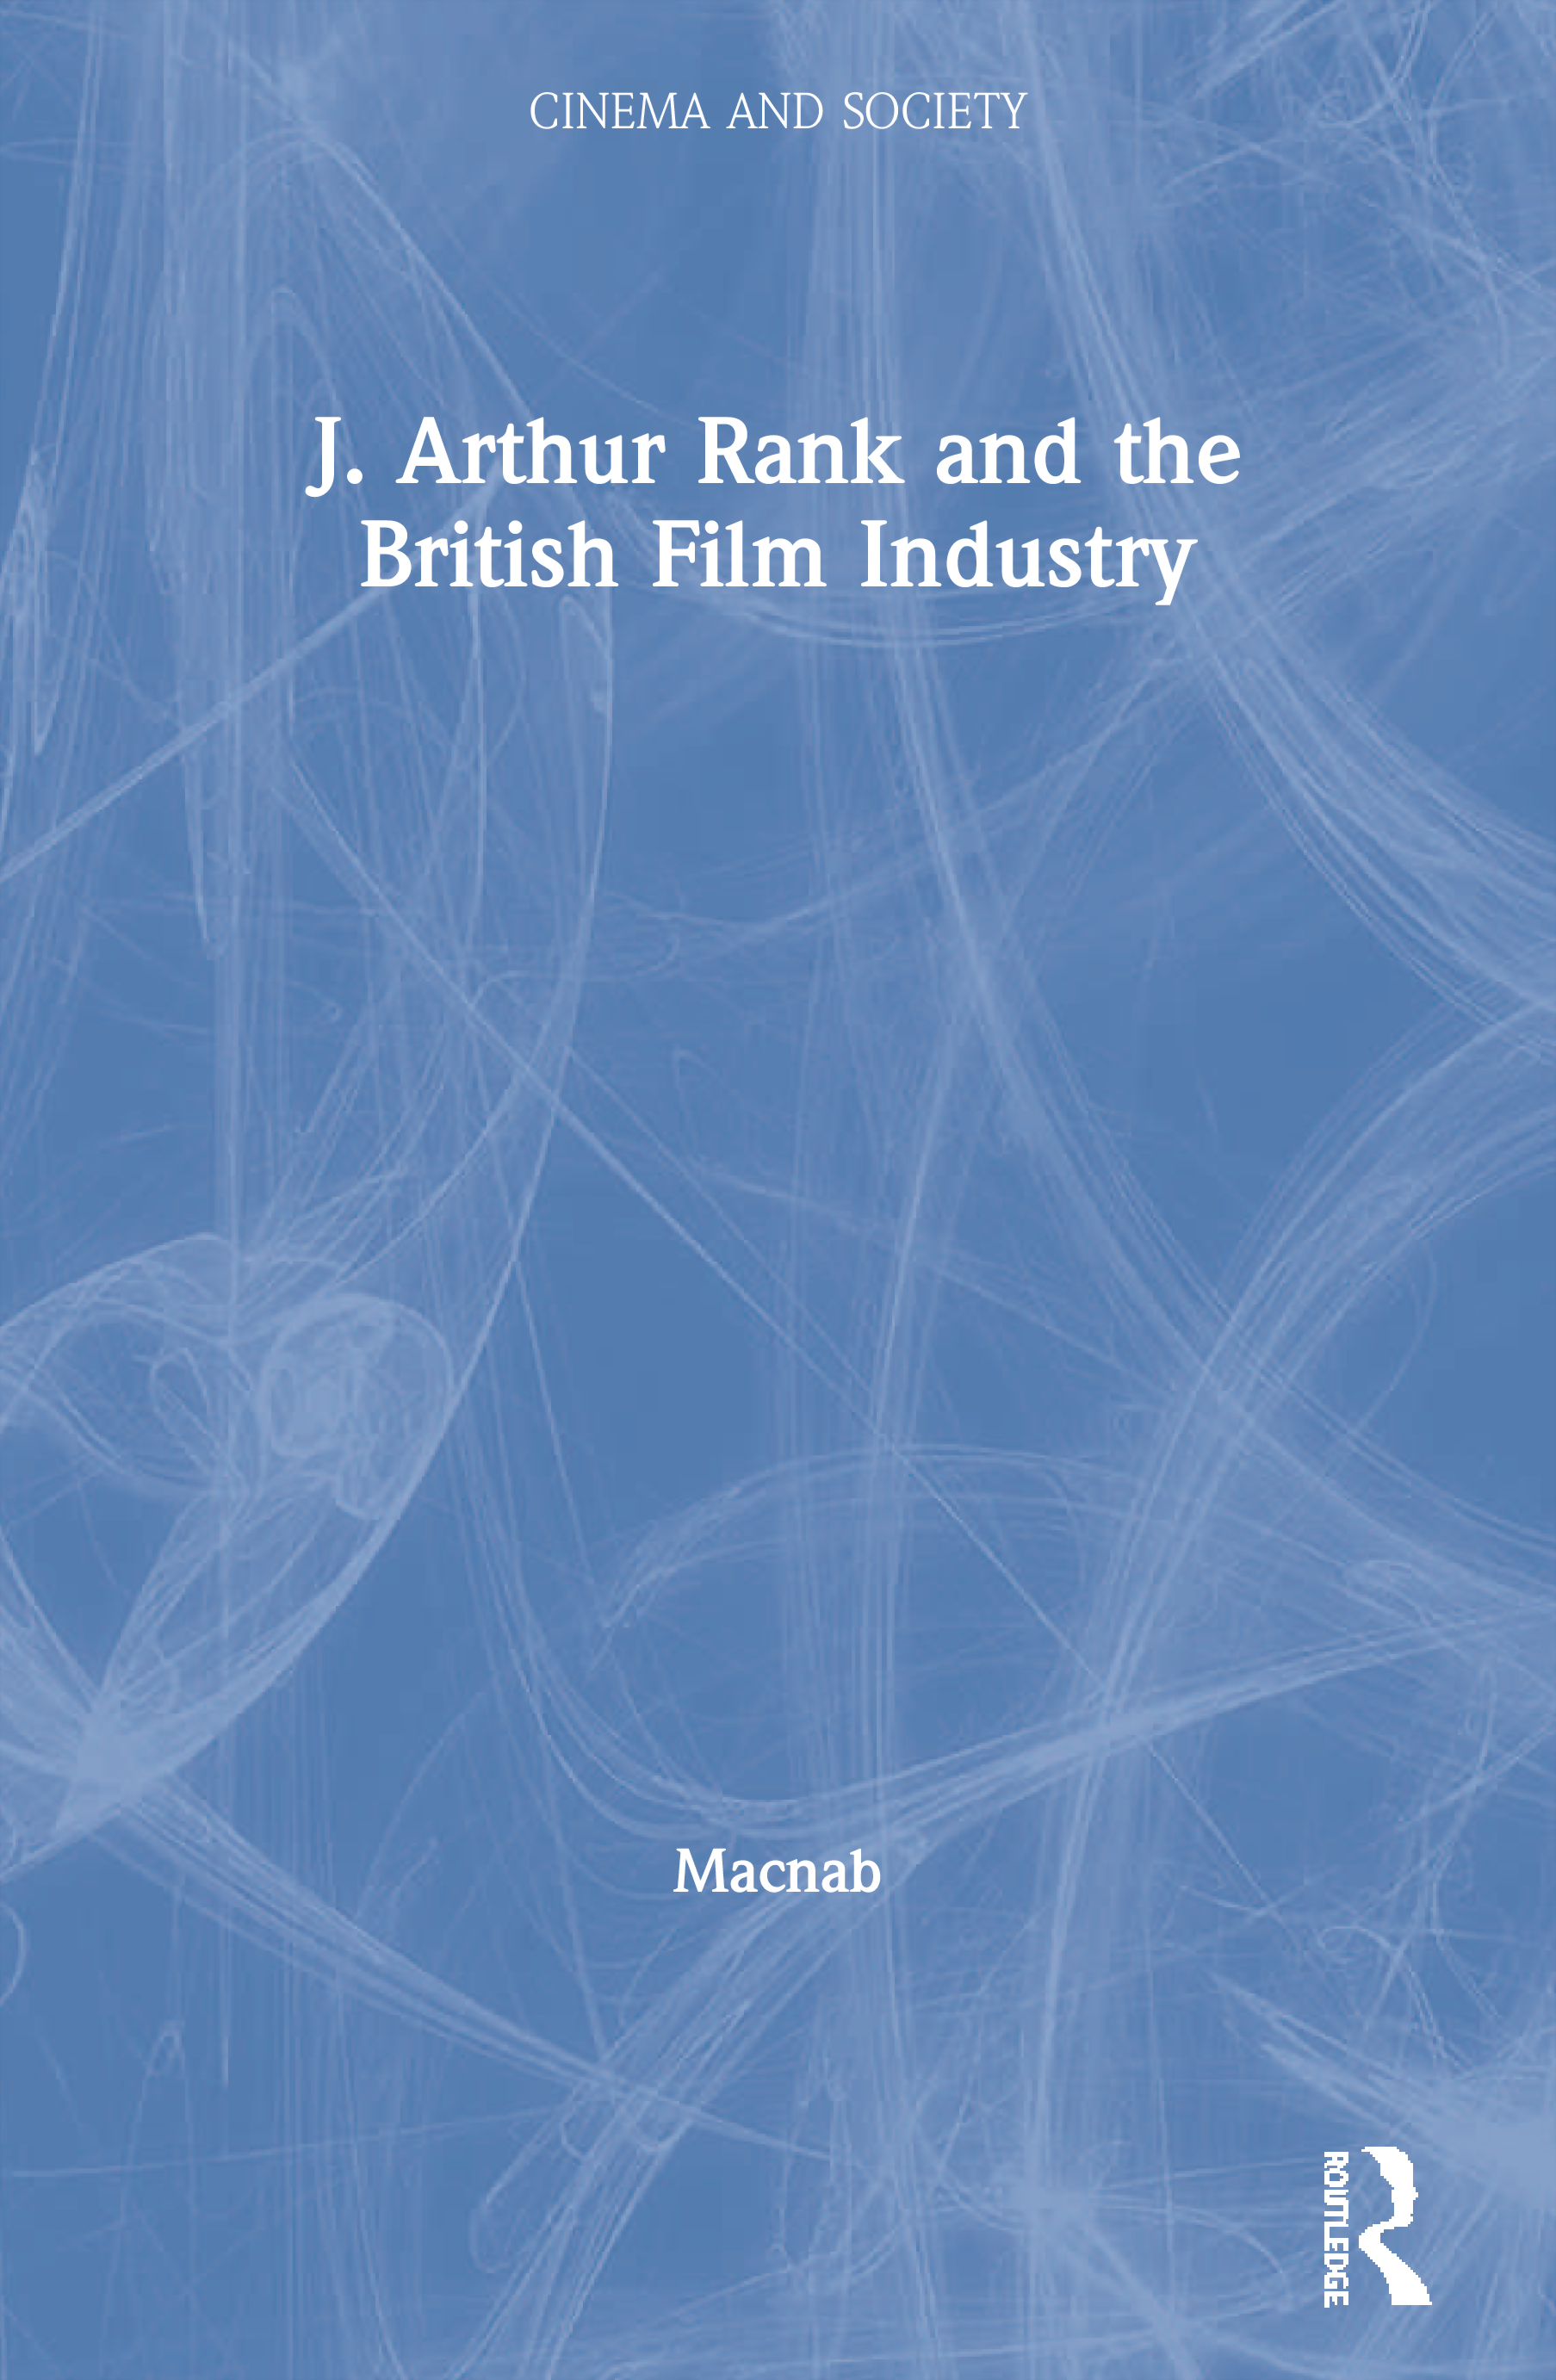 J. Arthur Rank and the British Film Industry book cover